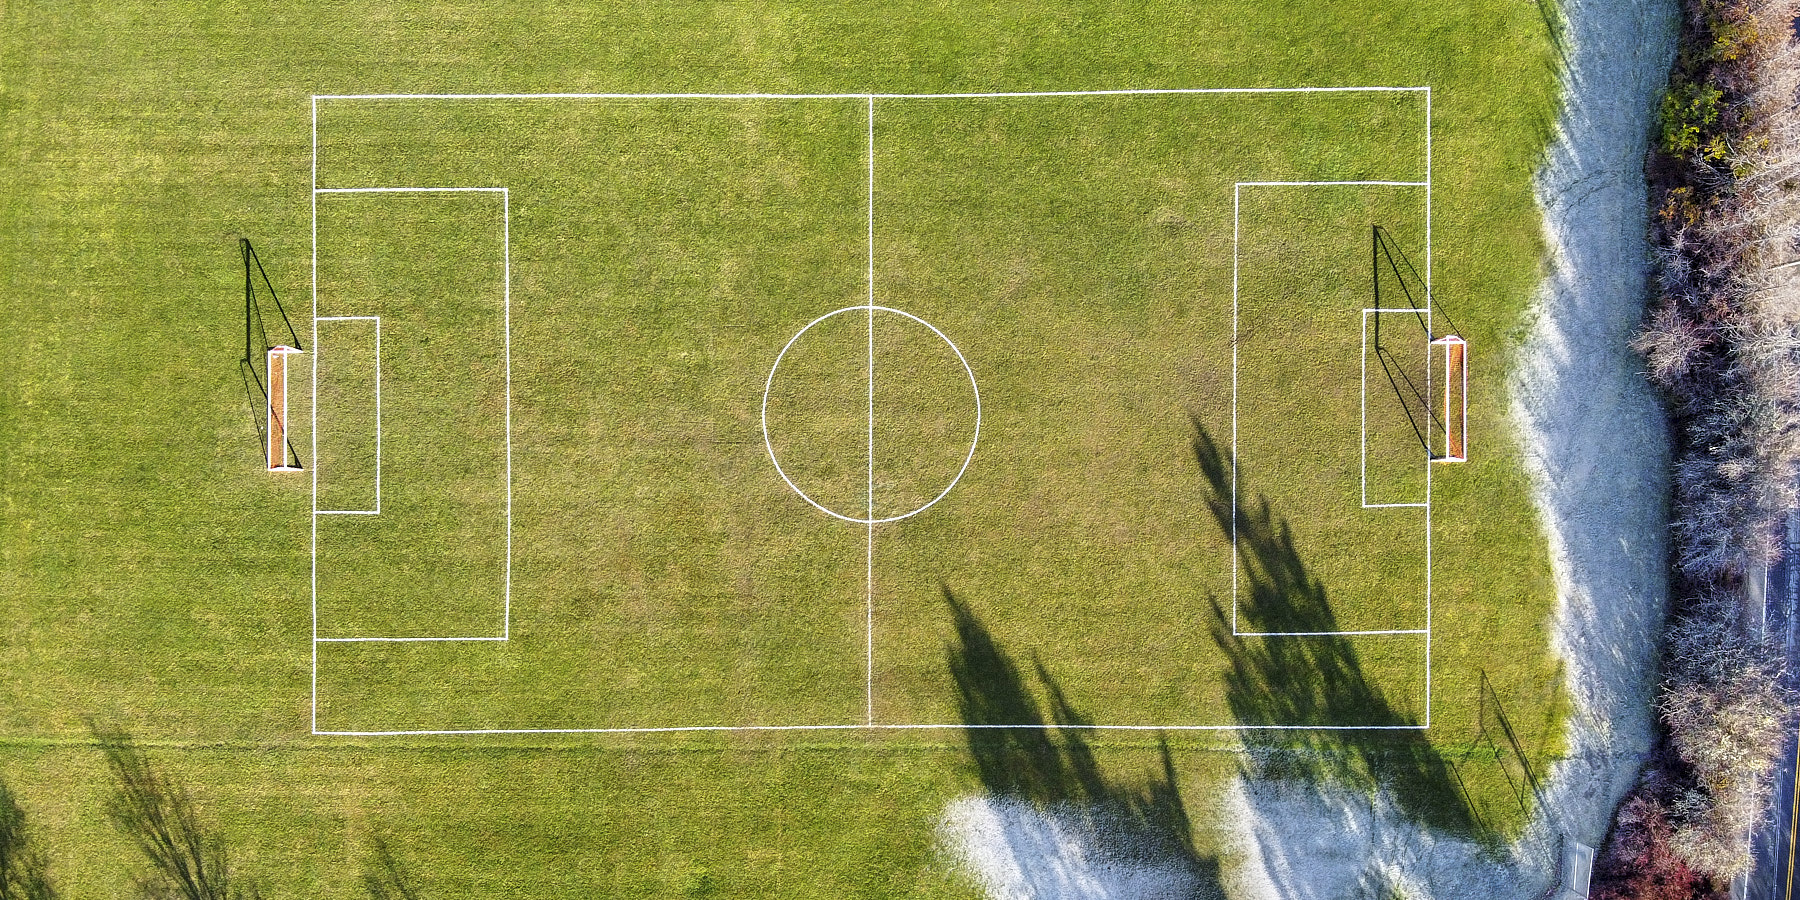 Fernwood Soccer Field on a frosty November morning. (© johncameron.ca)